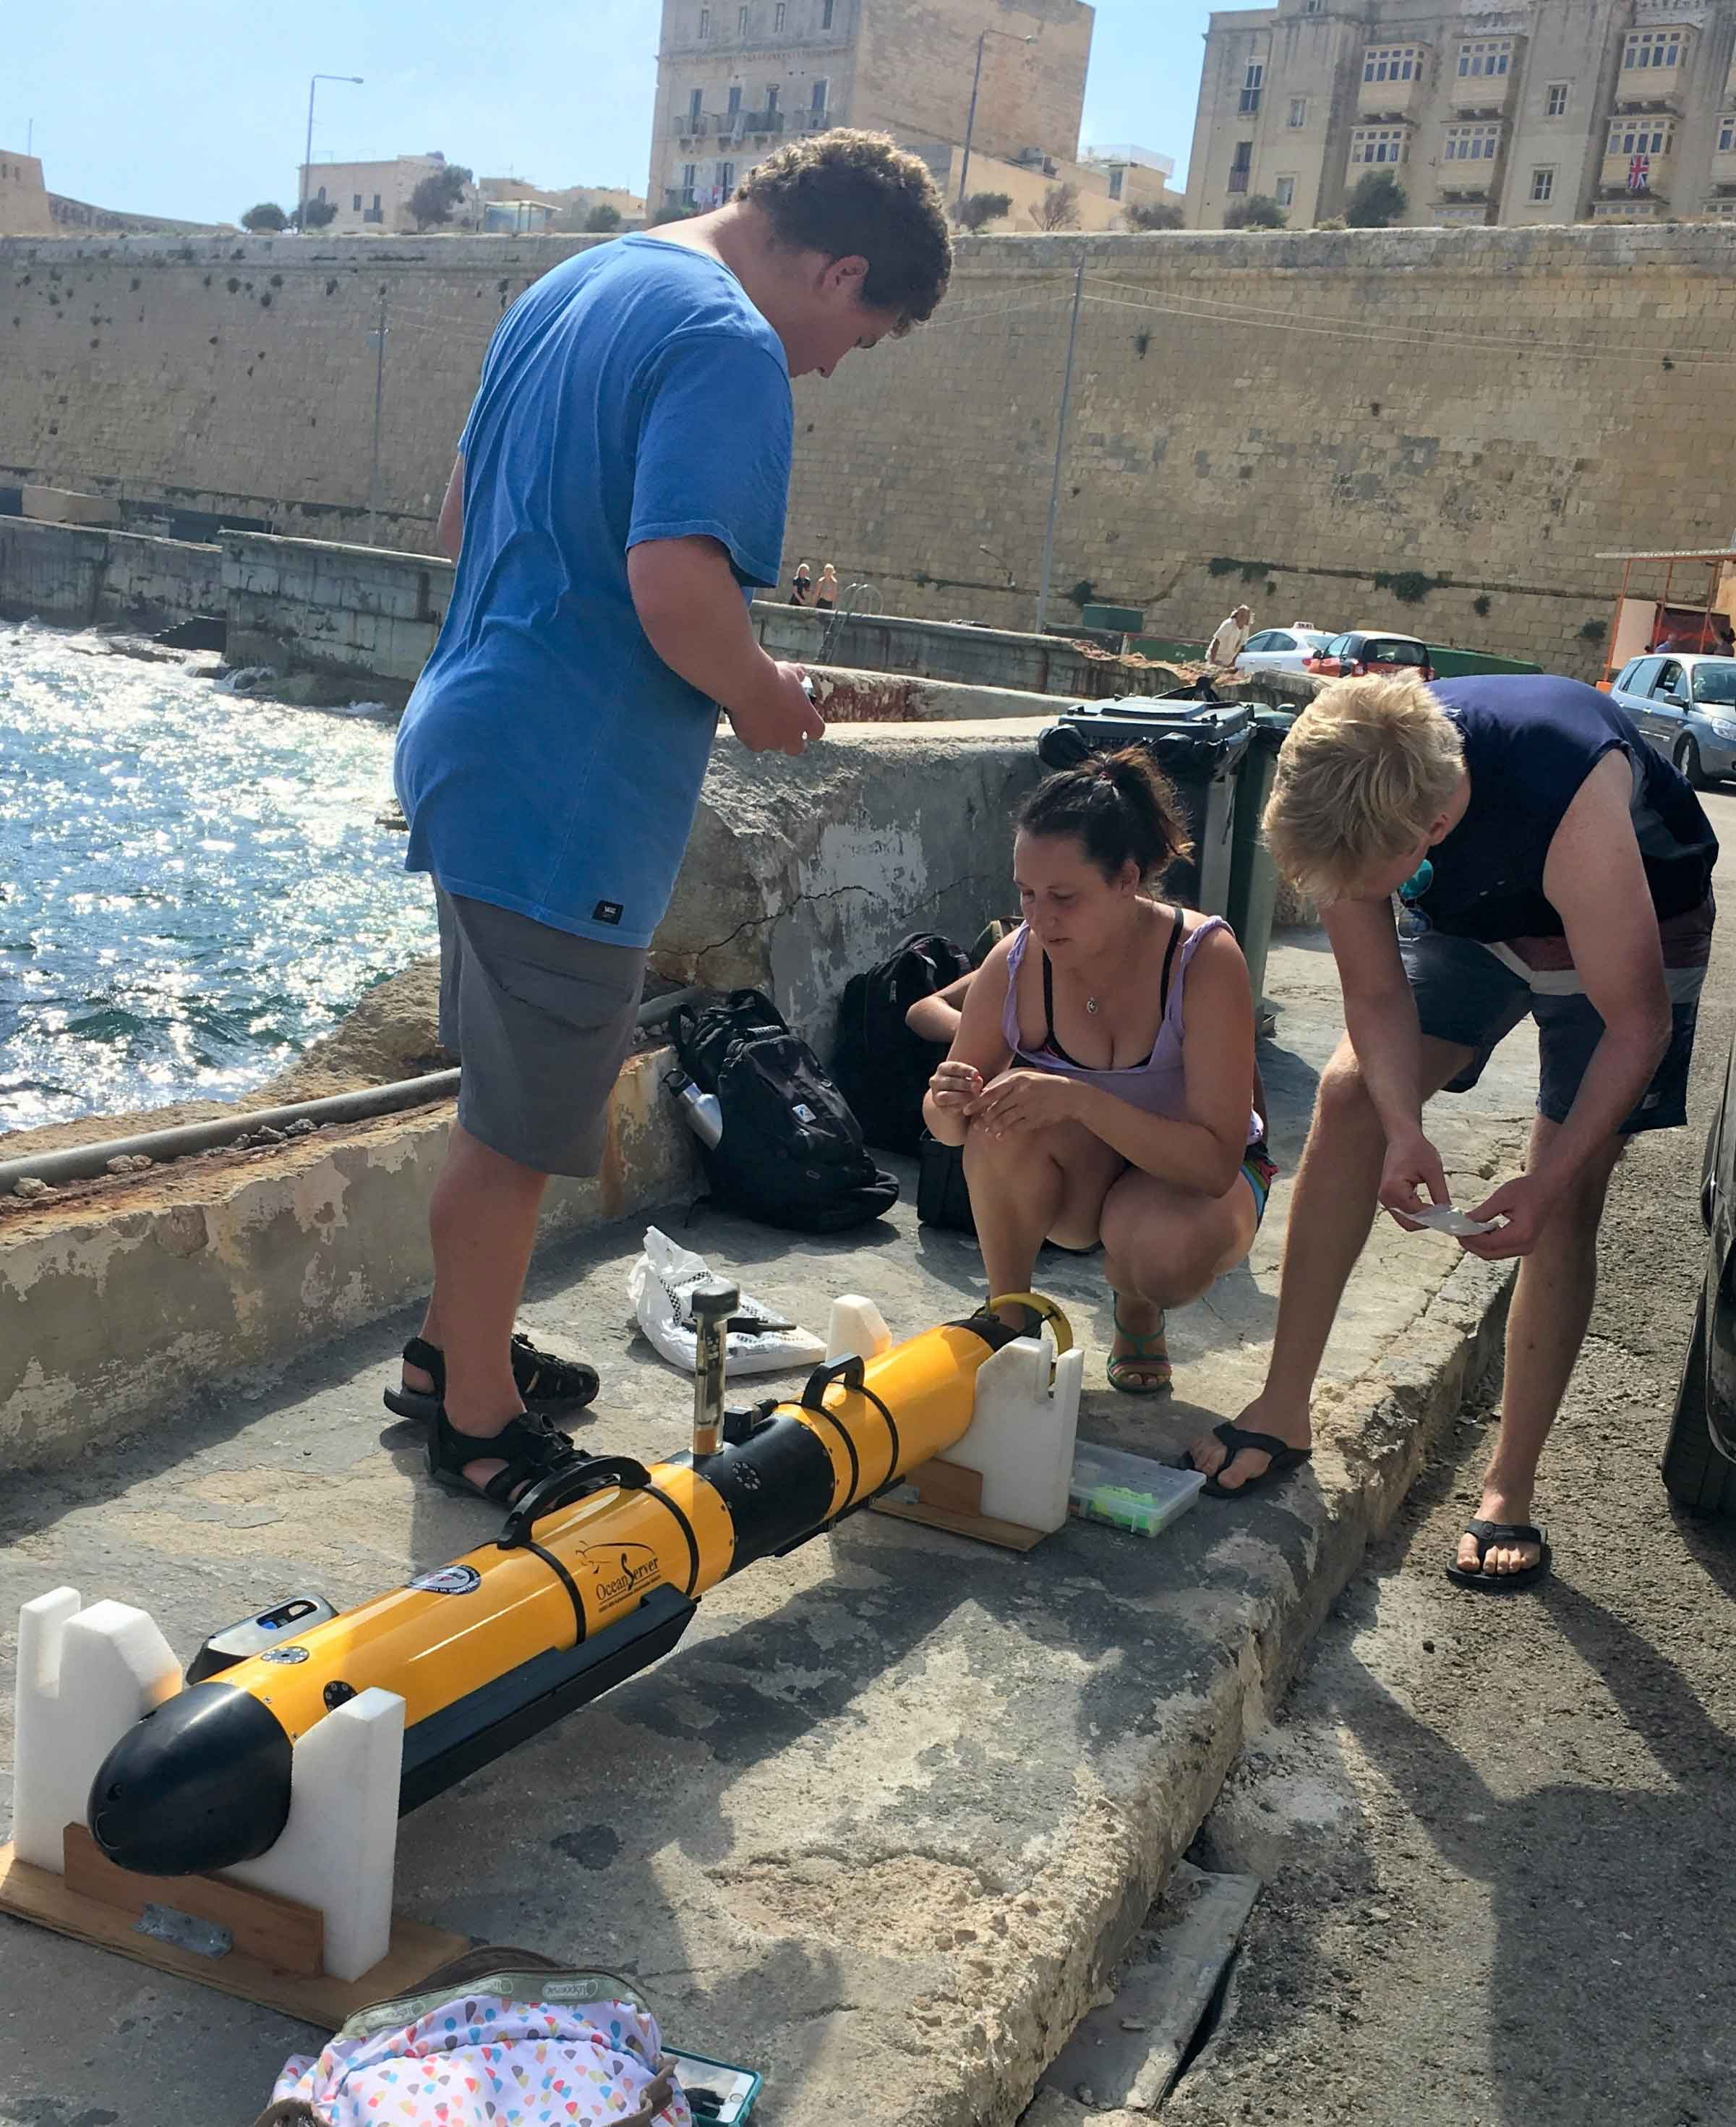 Cal Poly students Bonita Galvan from San Antonio, Texas (center) and Kolton Yager (left) prepare an automated underwater vehicle with a student from Harvey Mudd College during a day of exploration off the coast of Malta.